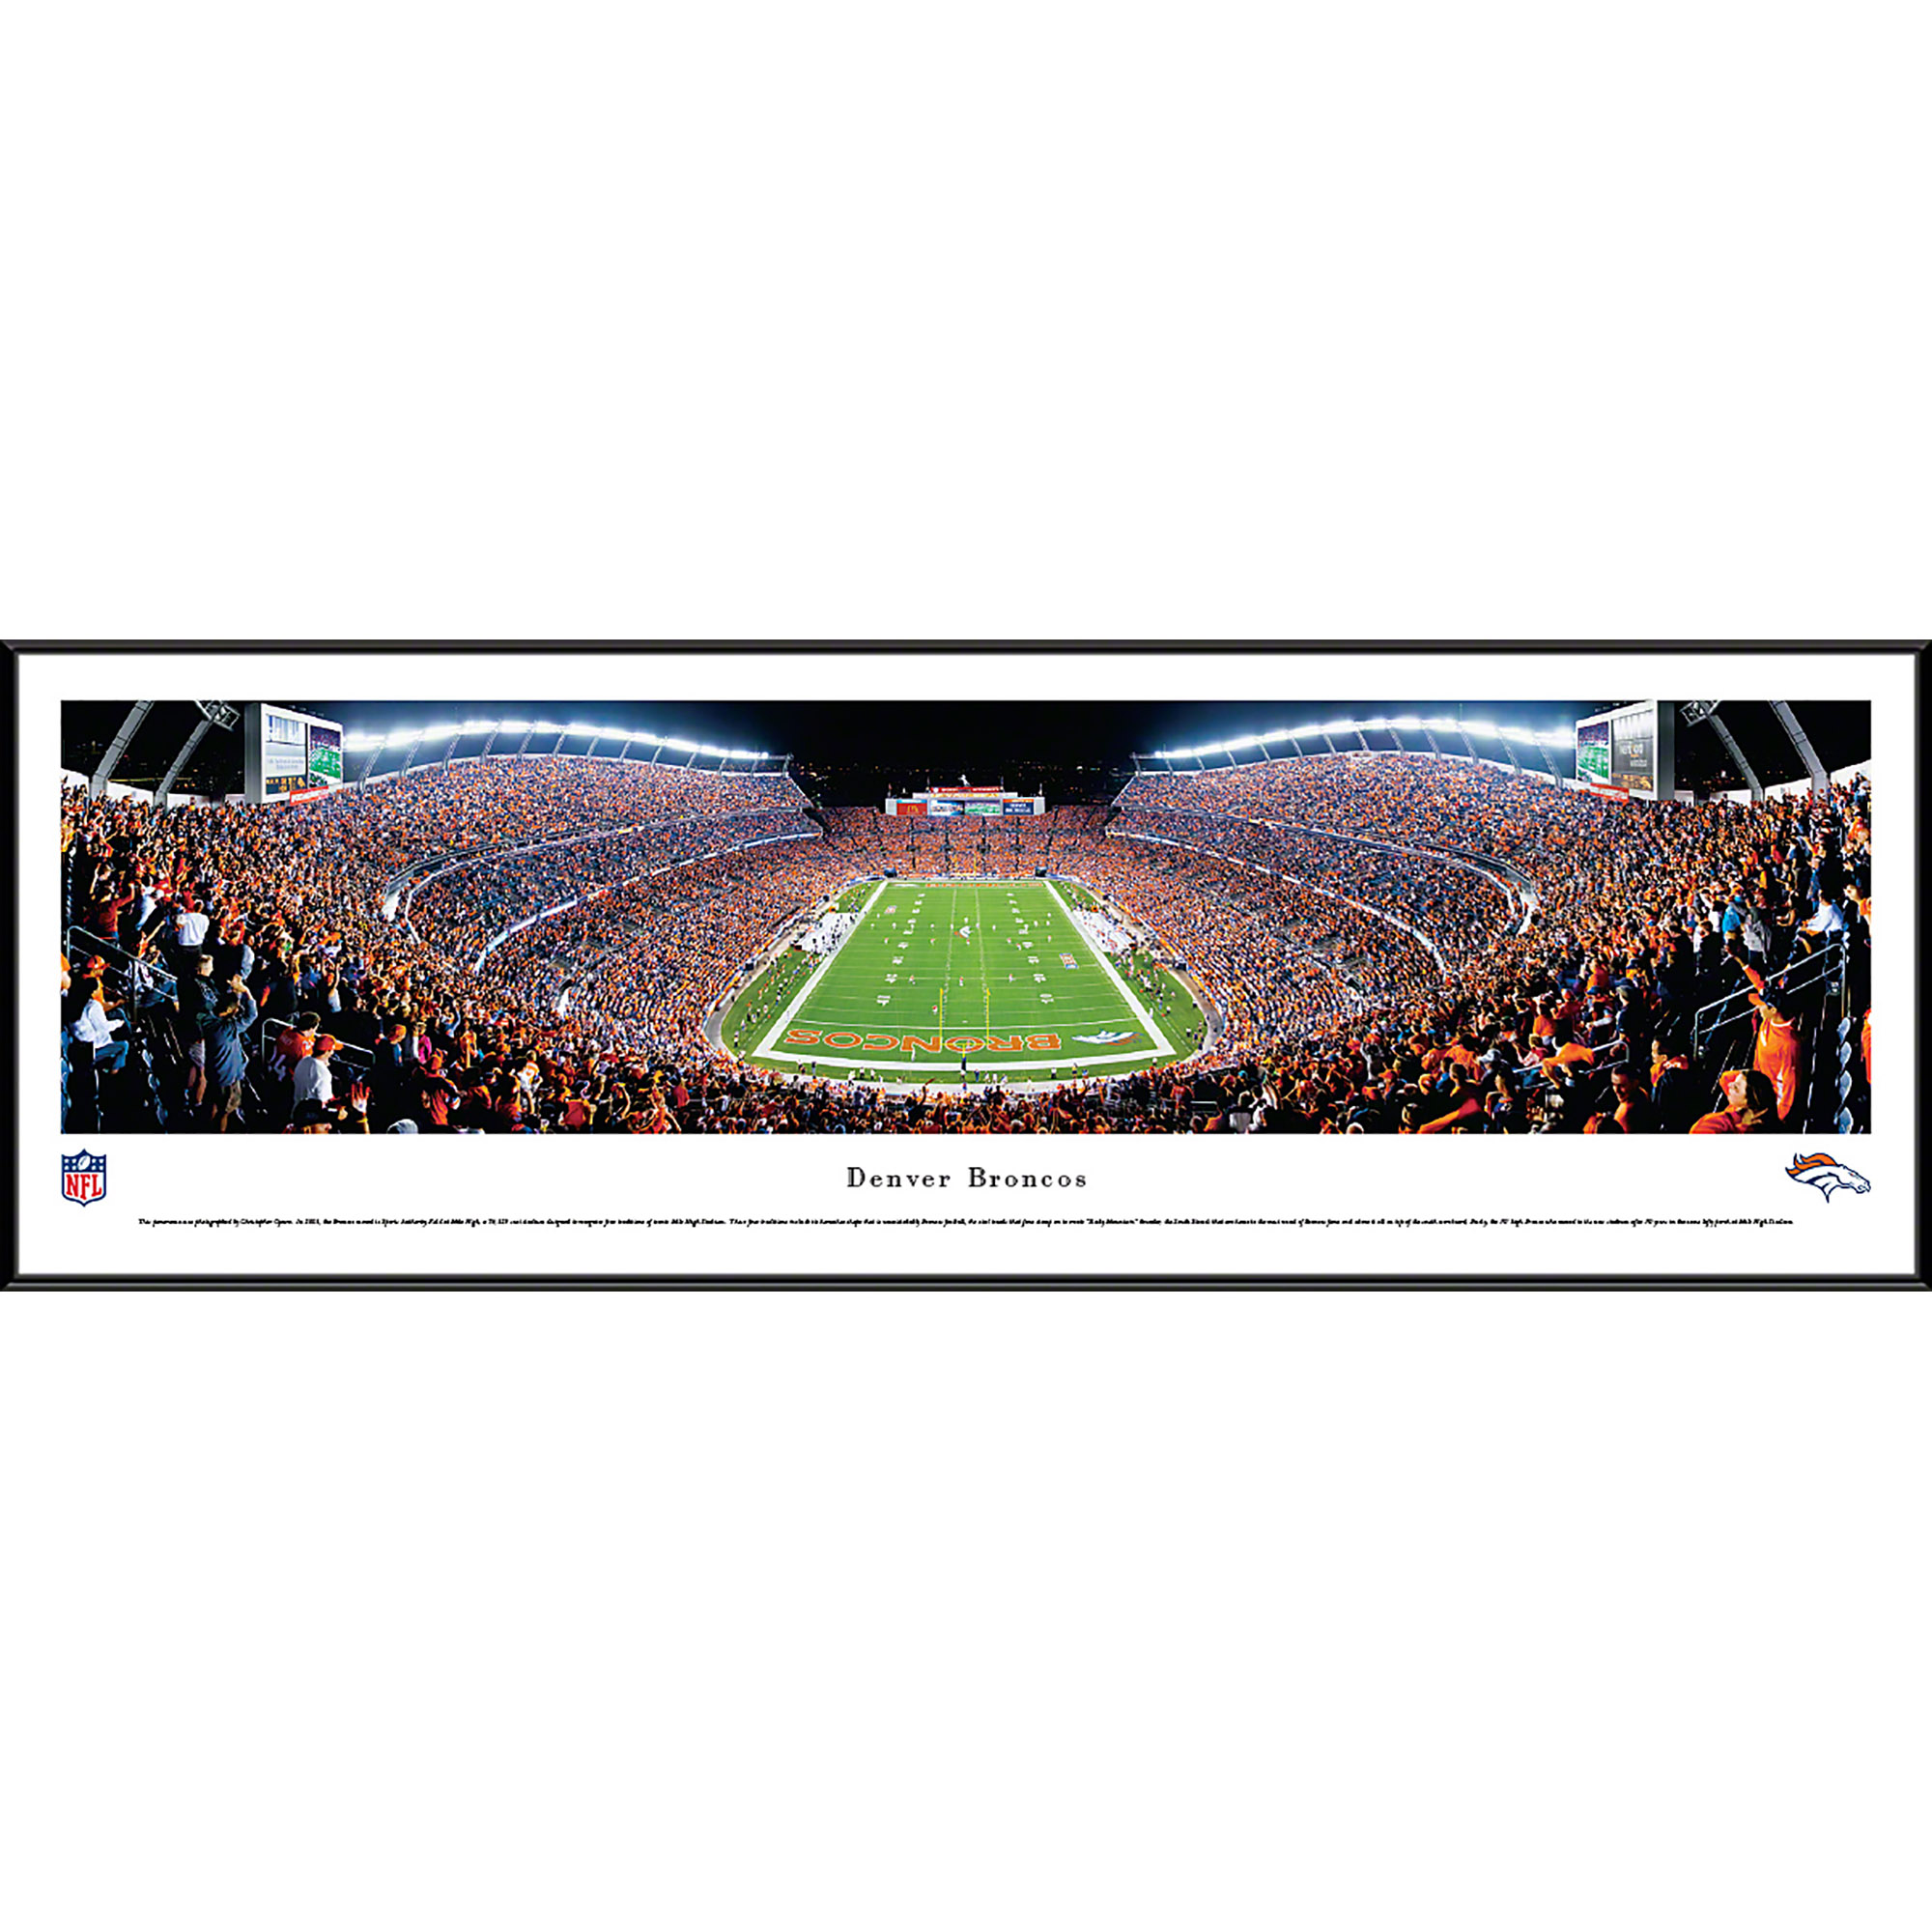 Denver Broncos - End Zone at Sports Authority Field at Mile High - Blakeway Panoramas NFL Print with Standard Frame